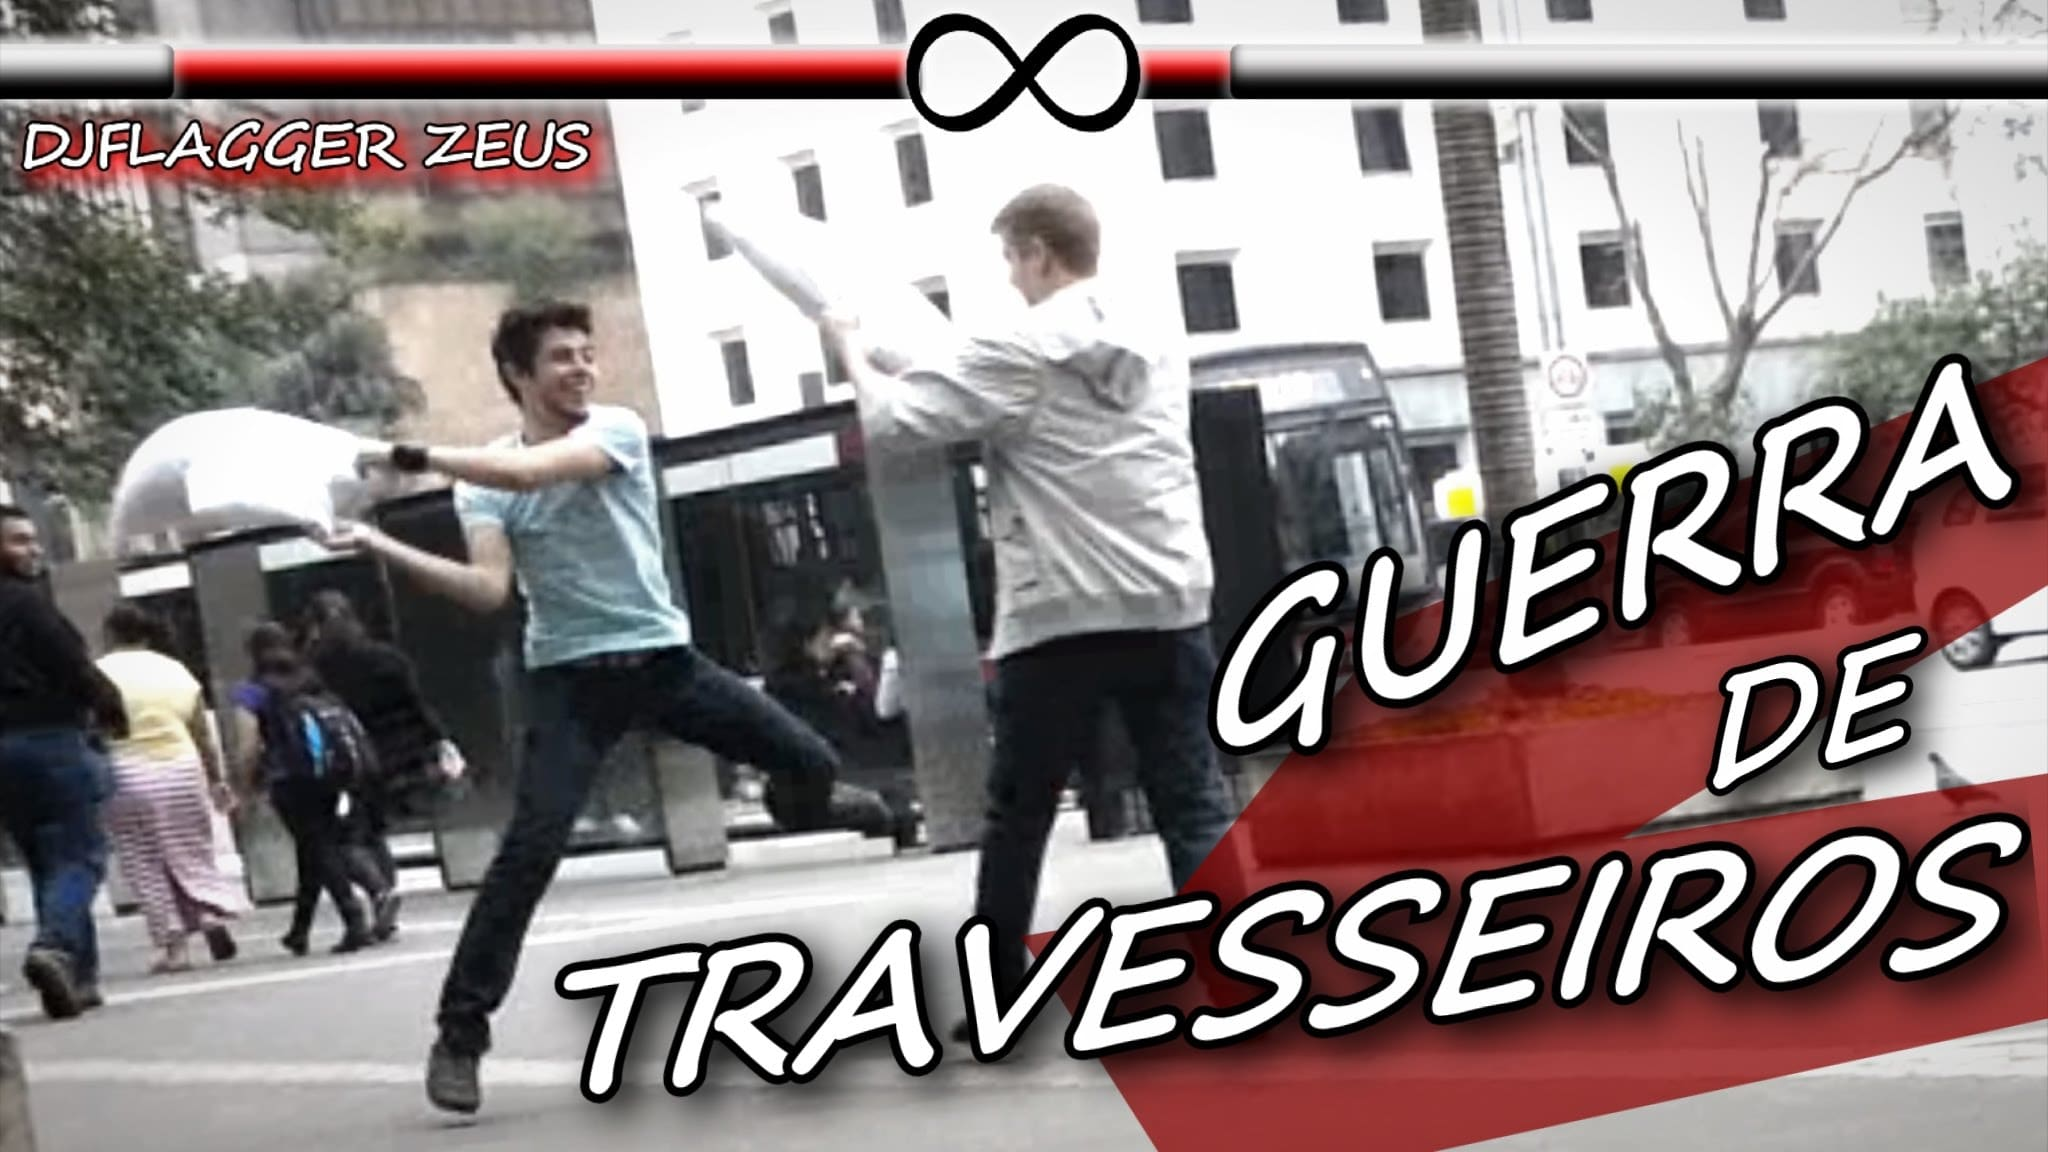 Guerra de Travesseiros (Pillow Fight Prank) - guerra de travesseiros pillow fight prank blog tediado